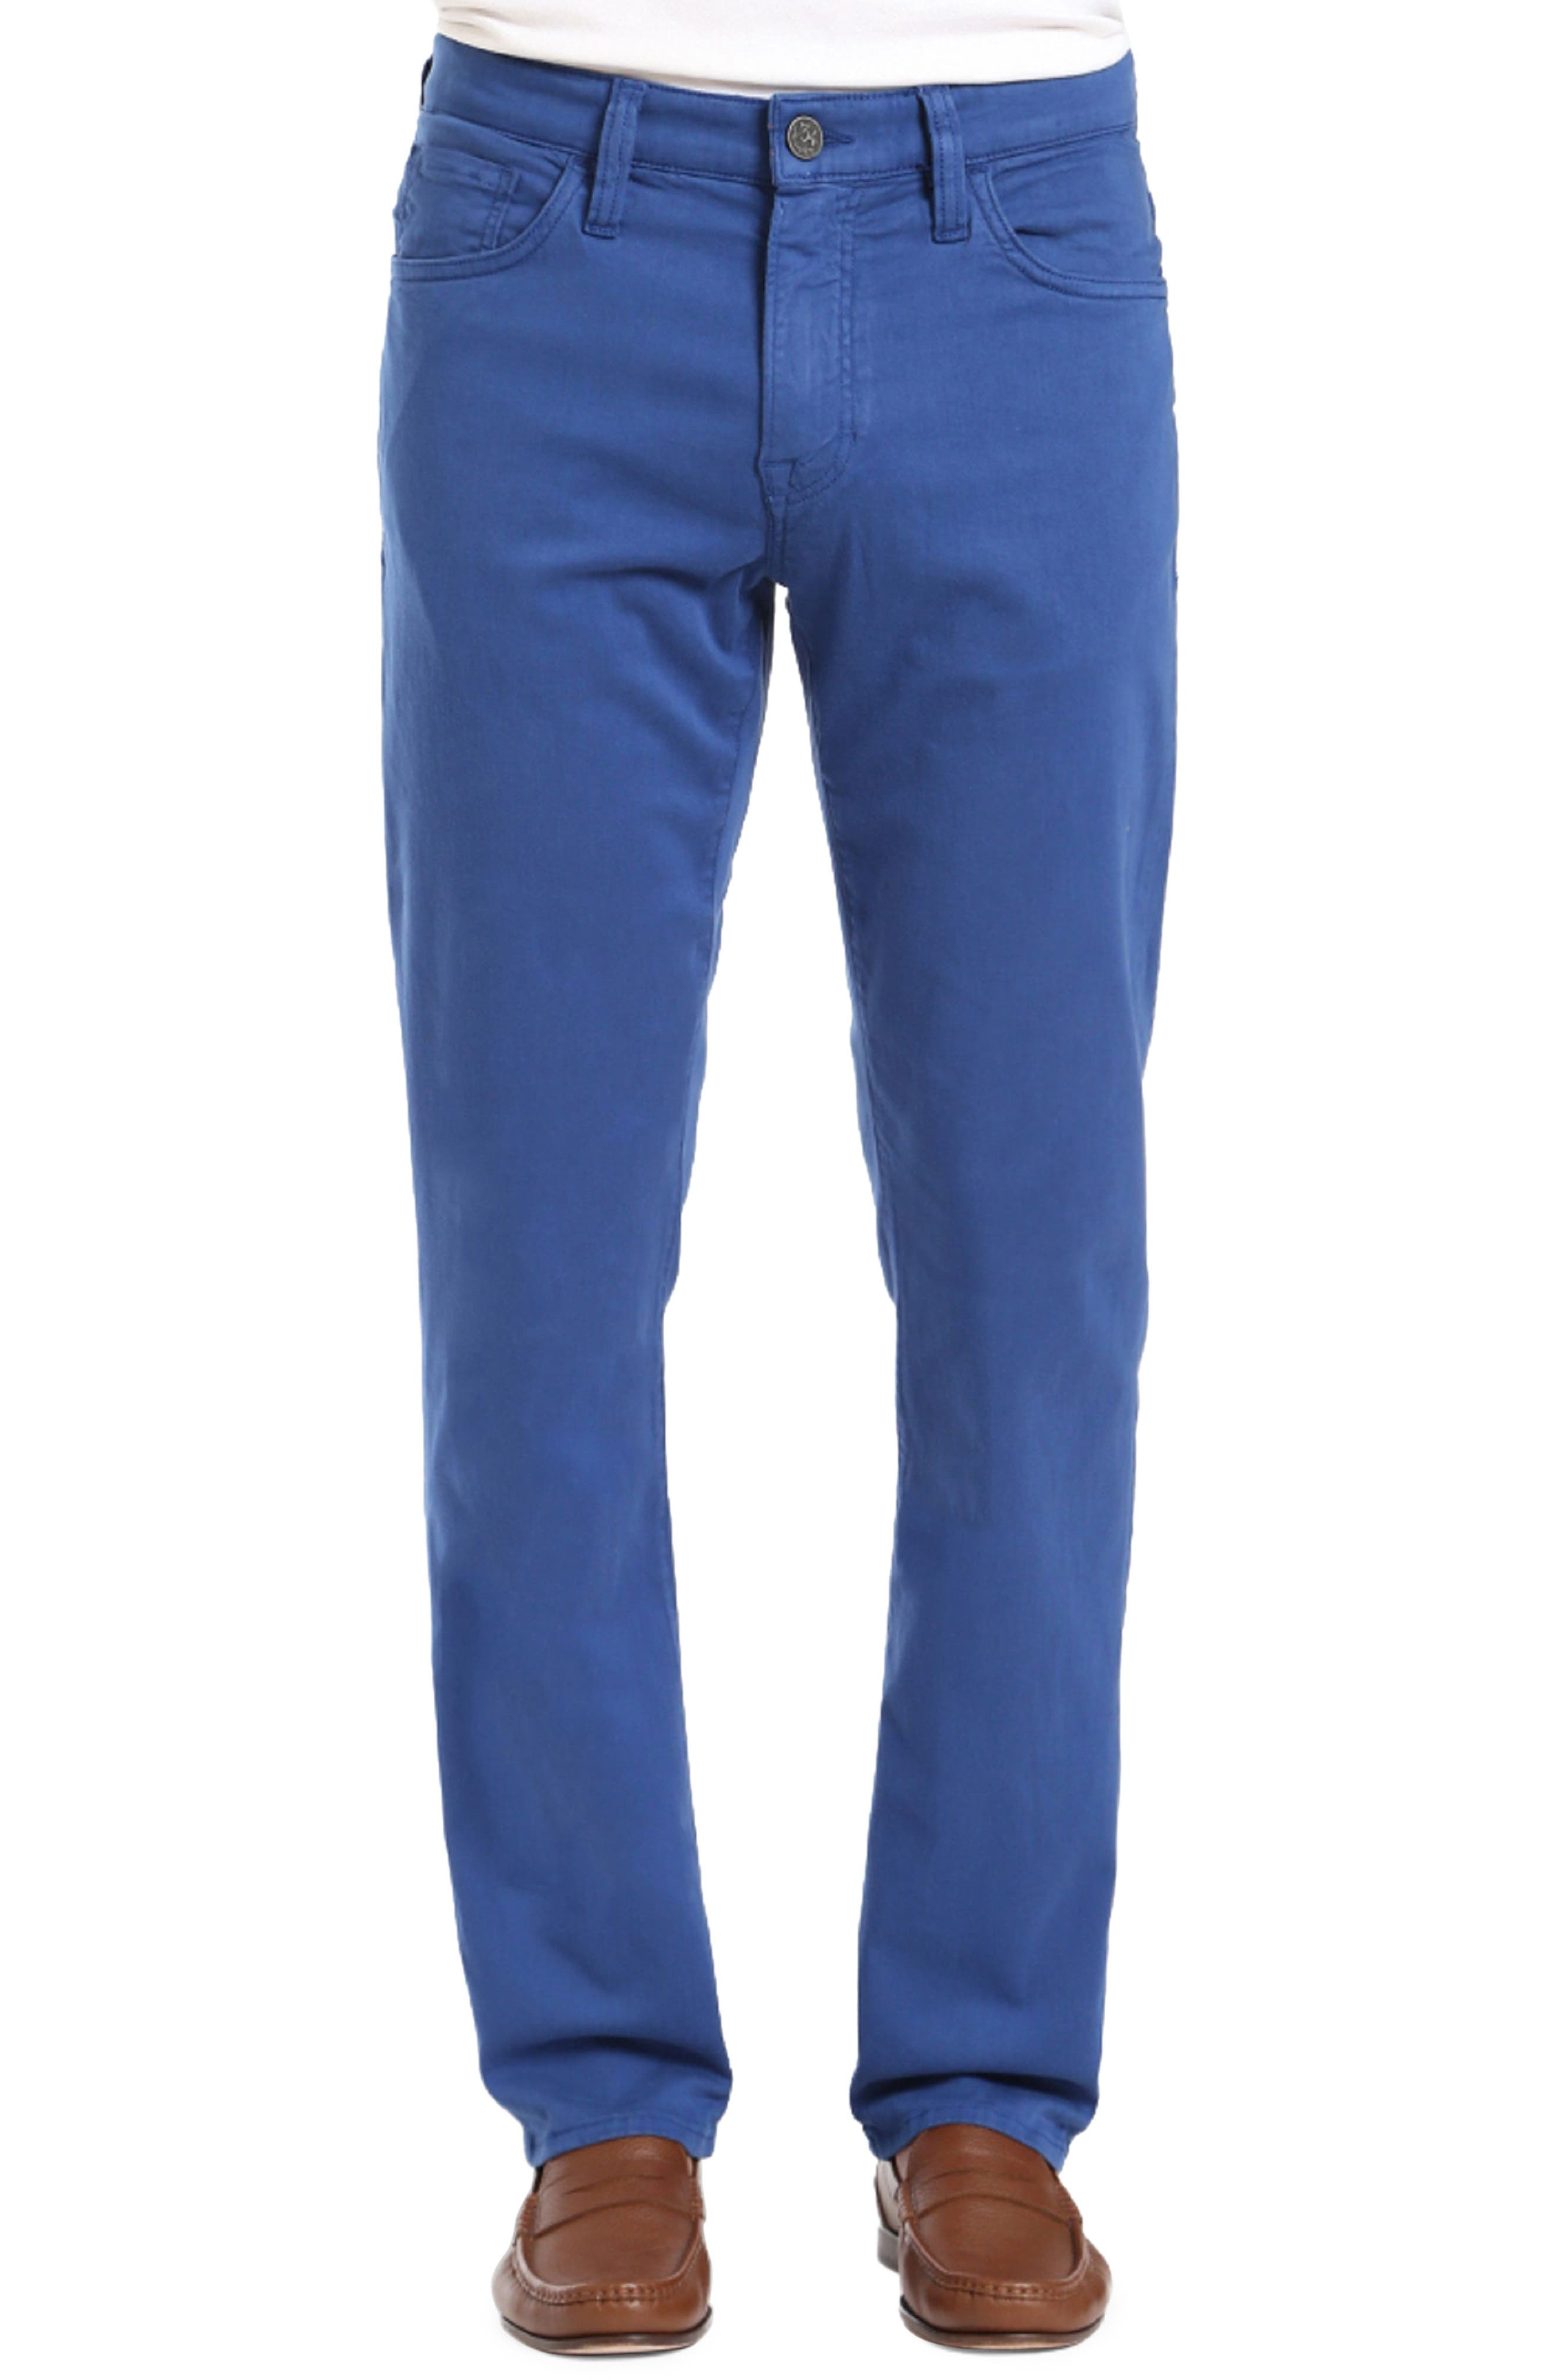 Courage Straight Leg Twill Pants,                         Main,                         color, BLUE